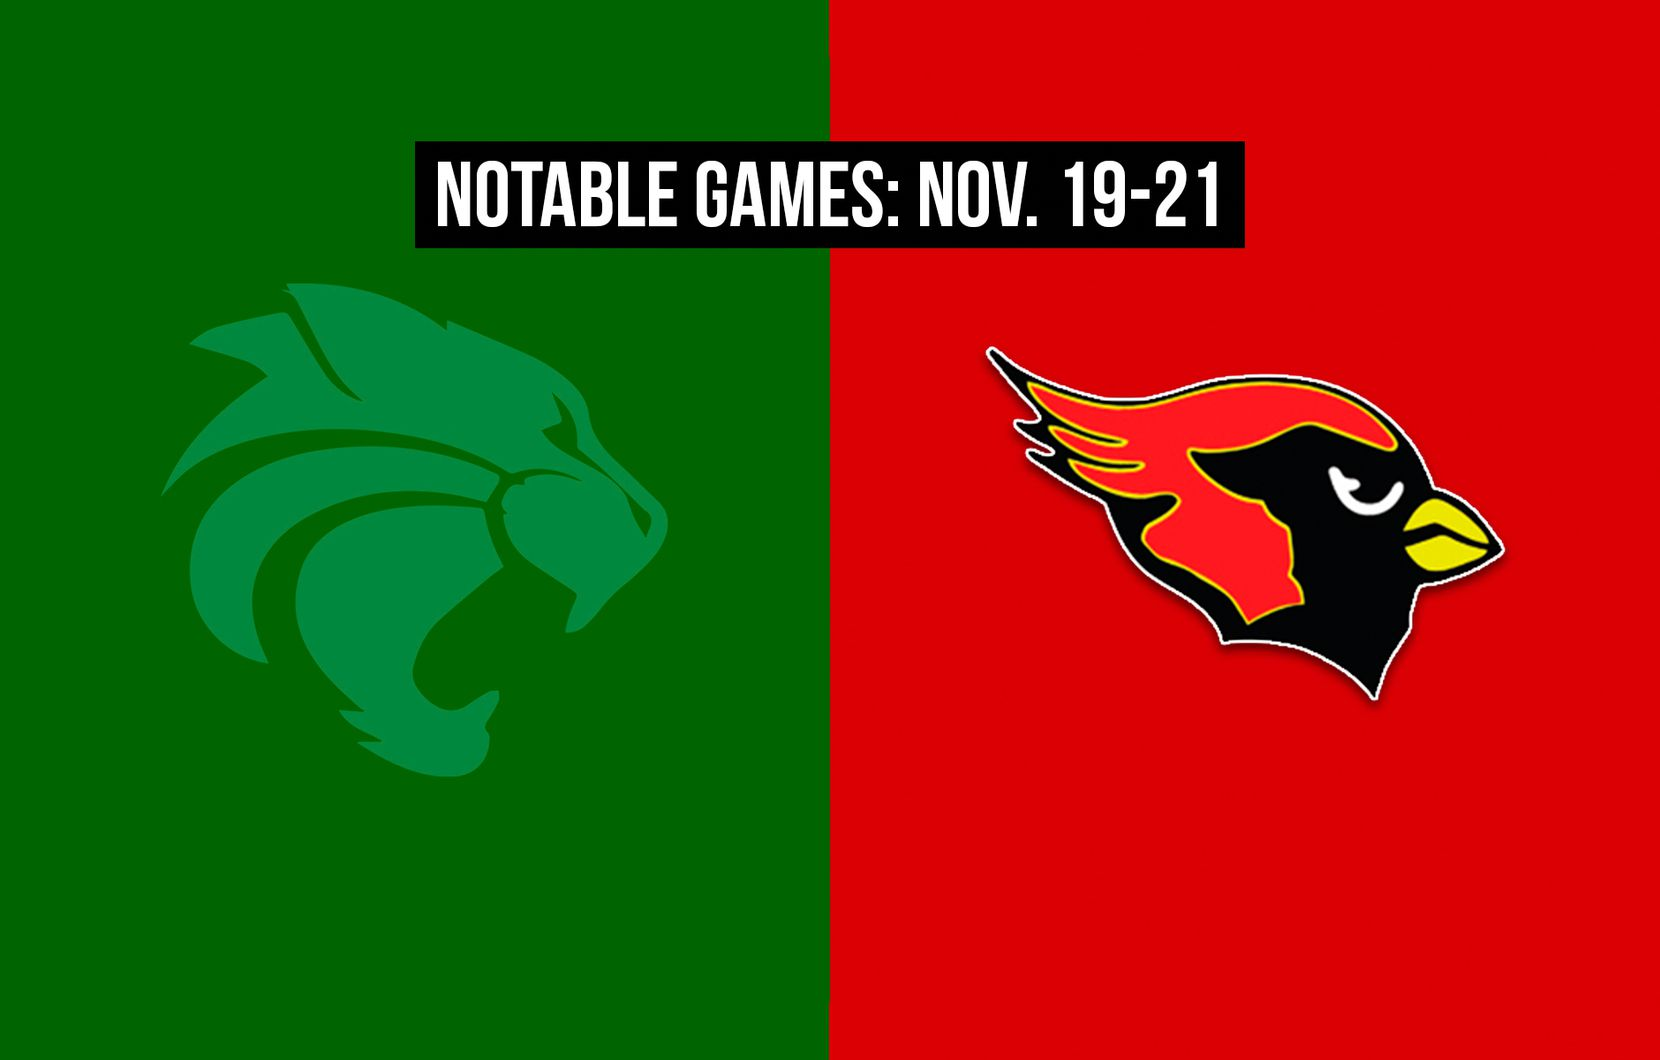 Notable games for the week of Nov. 19-21 of the 2020 season: Kennedale vs. Melissa.